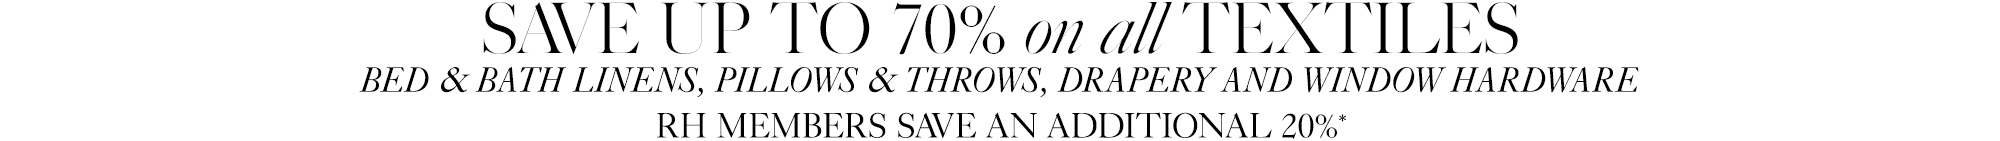 Save 20-70% on all Textiles